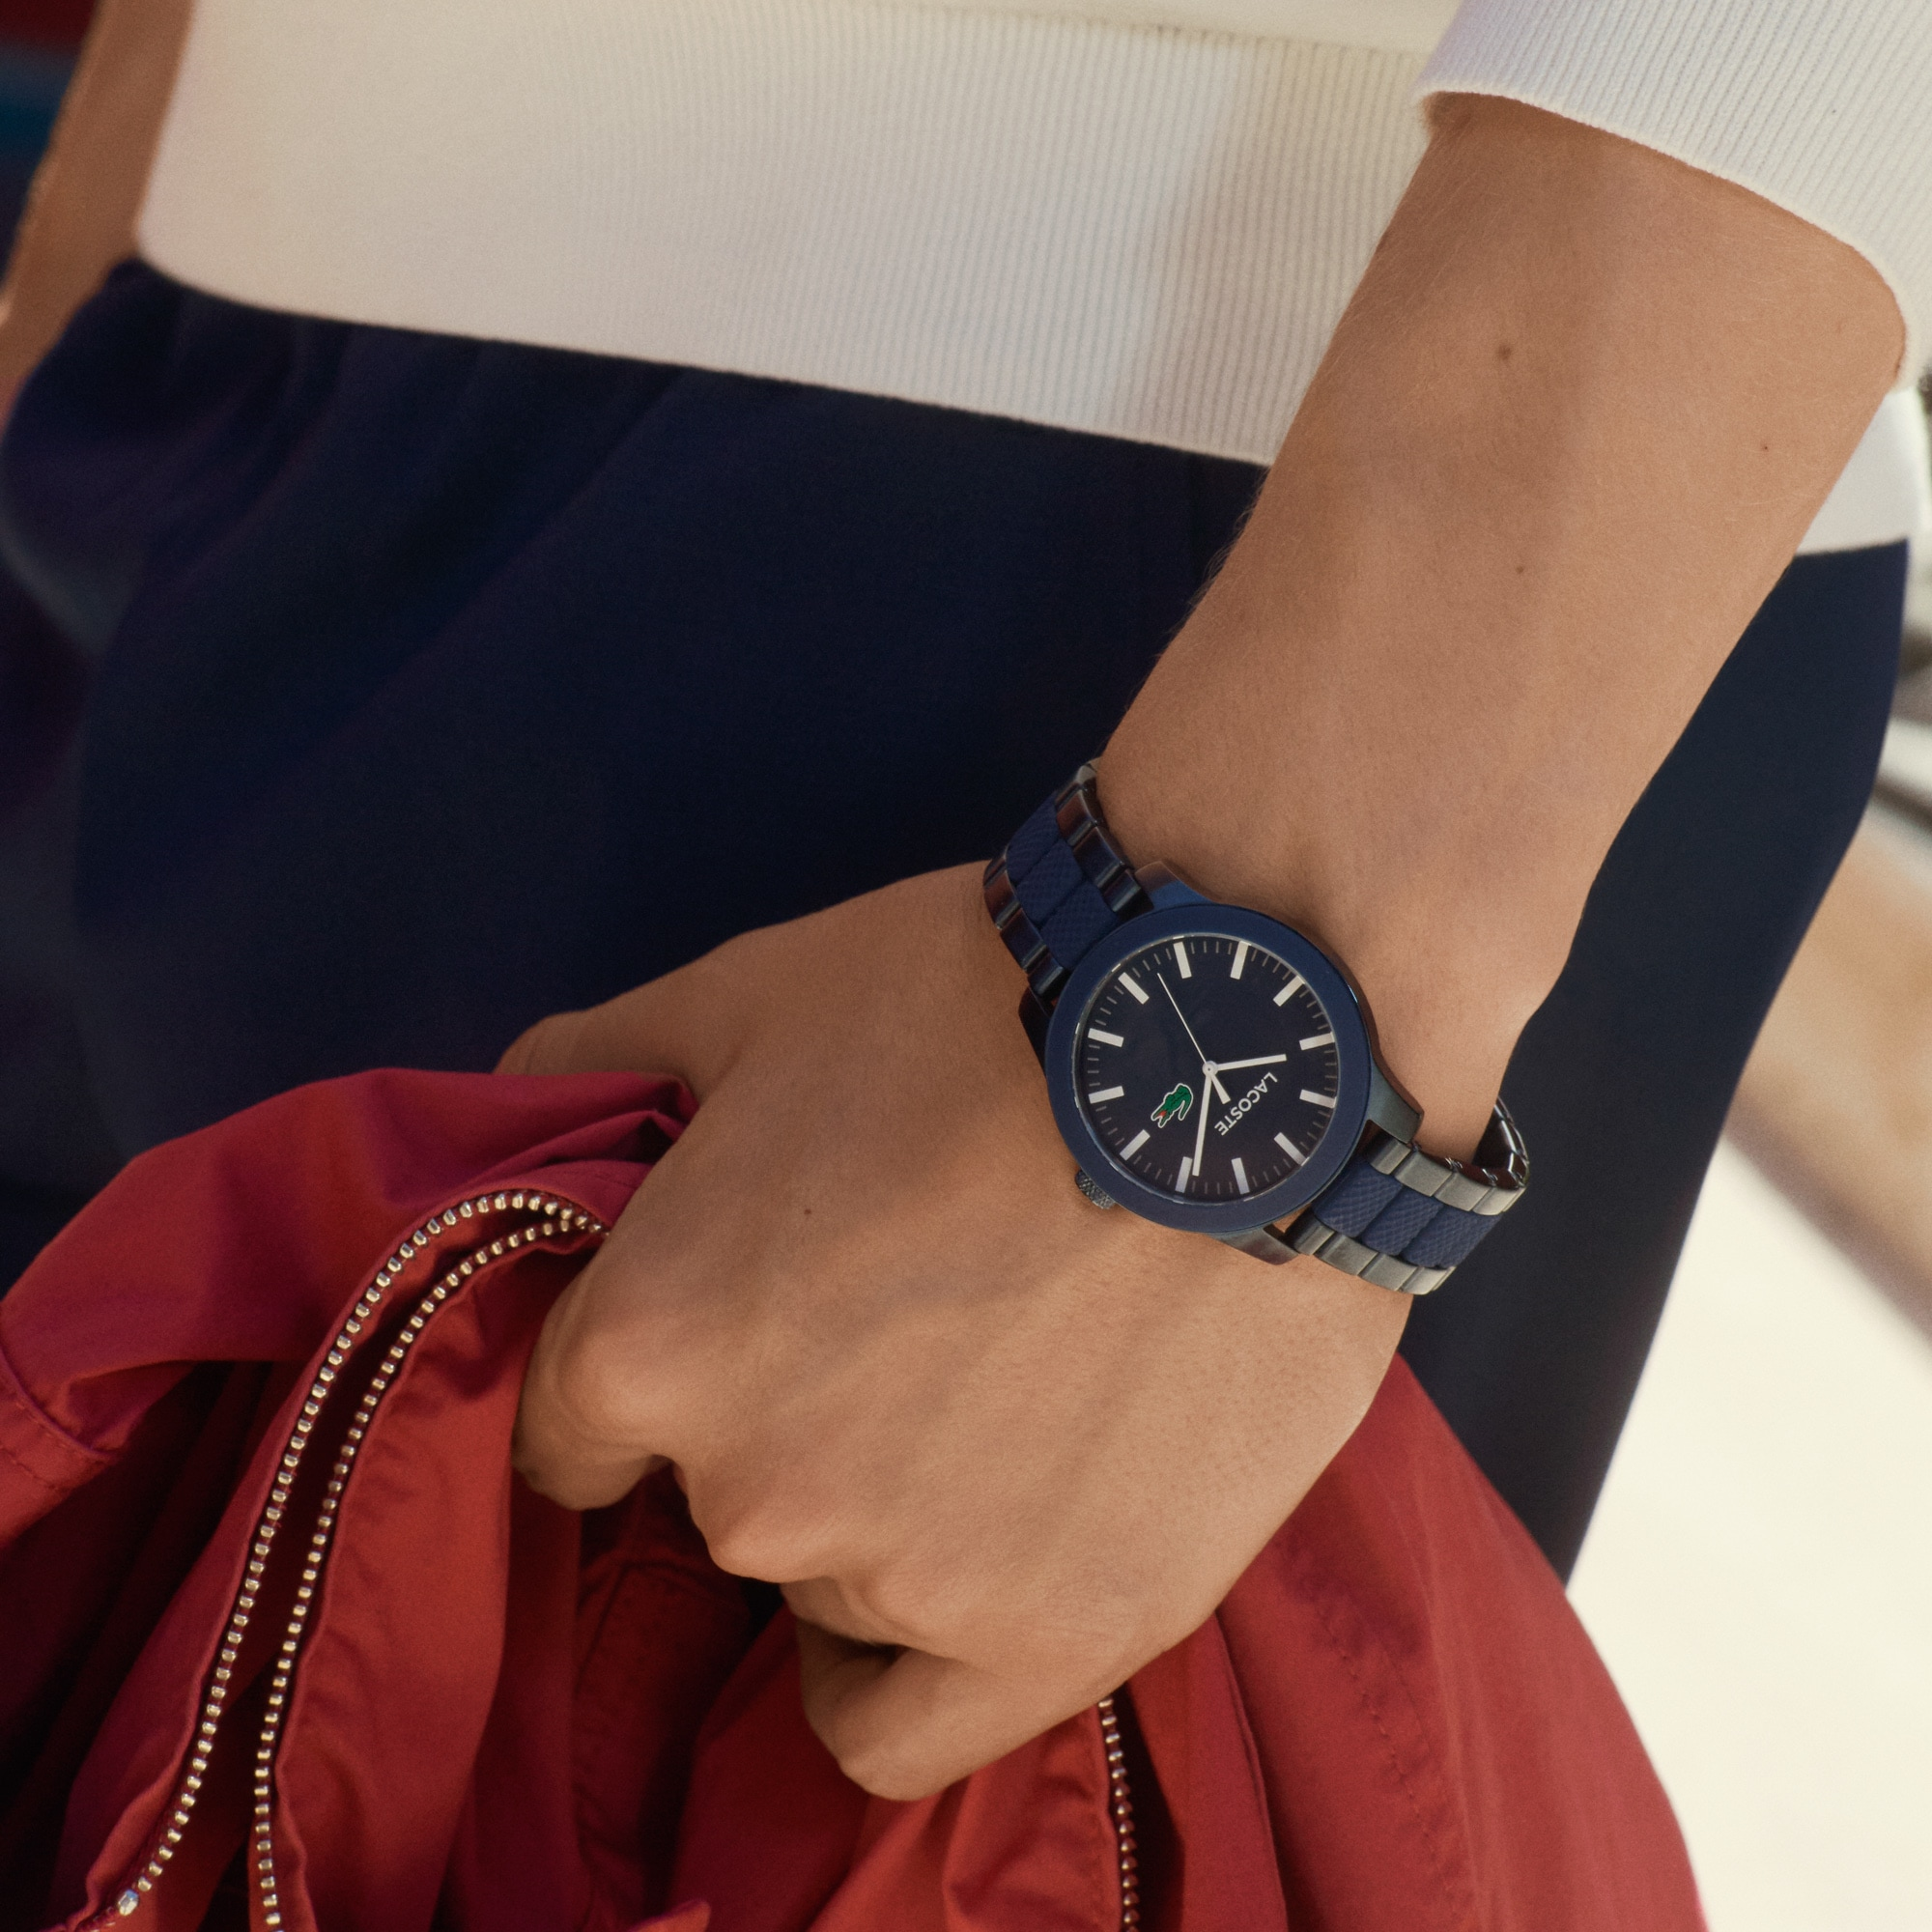 Men's Lacoste 12.12 Watch with Bi-material Blue Silicone and Grey Plated Bracelet